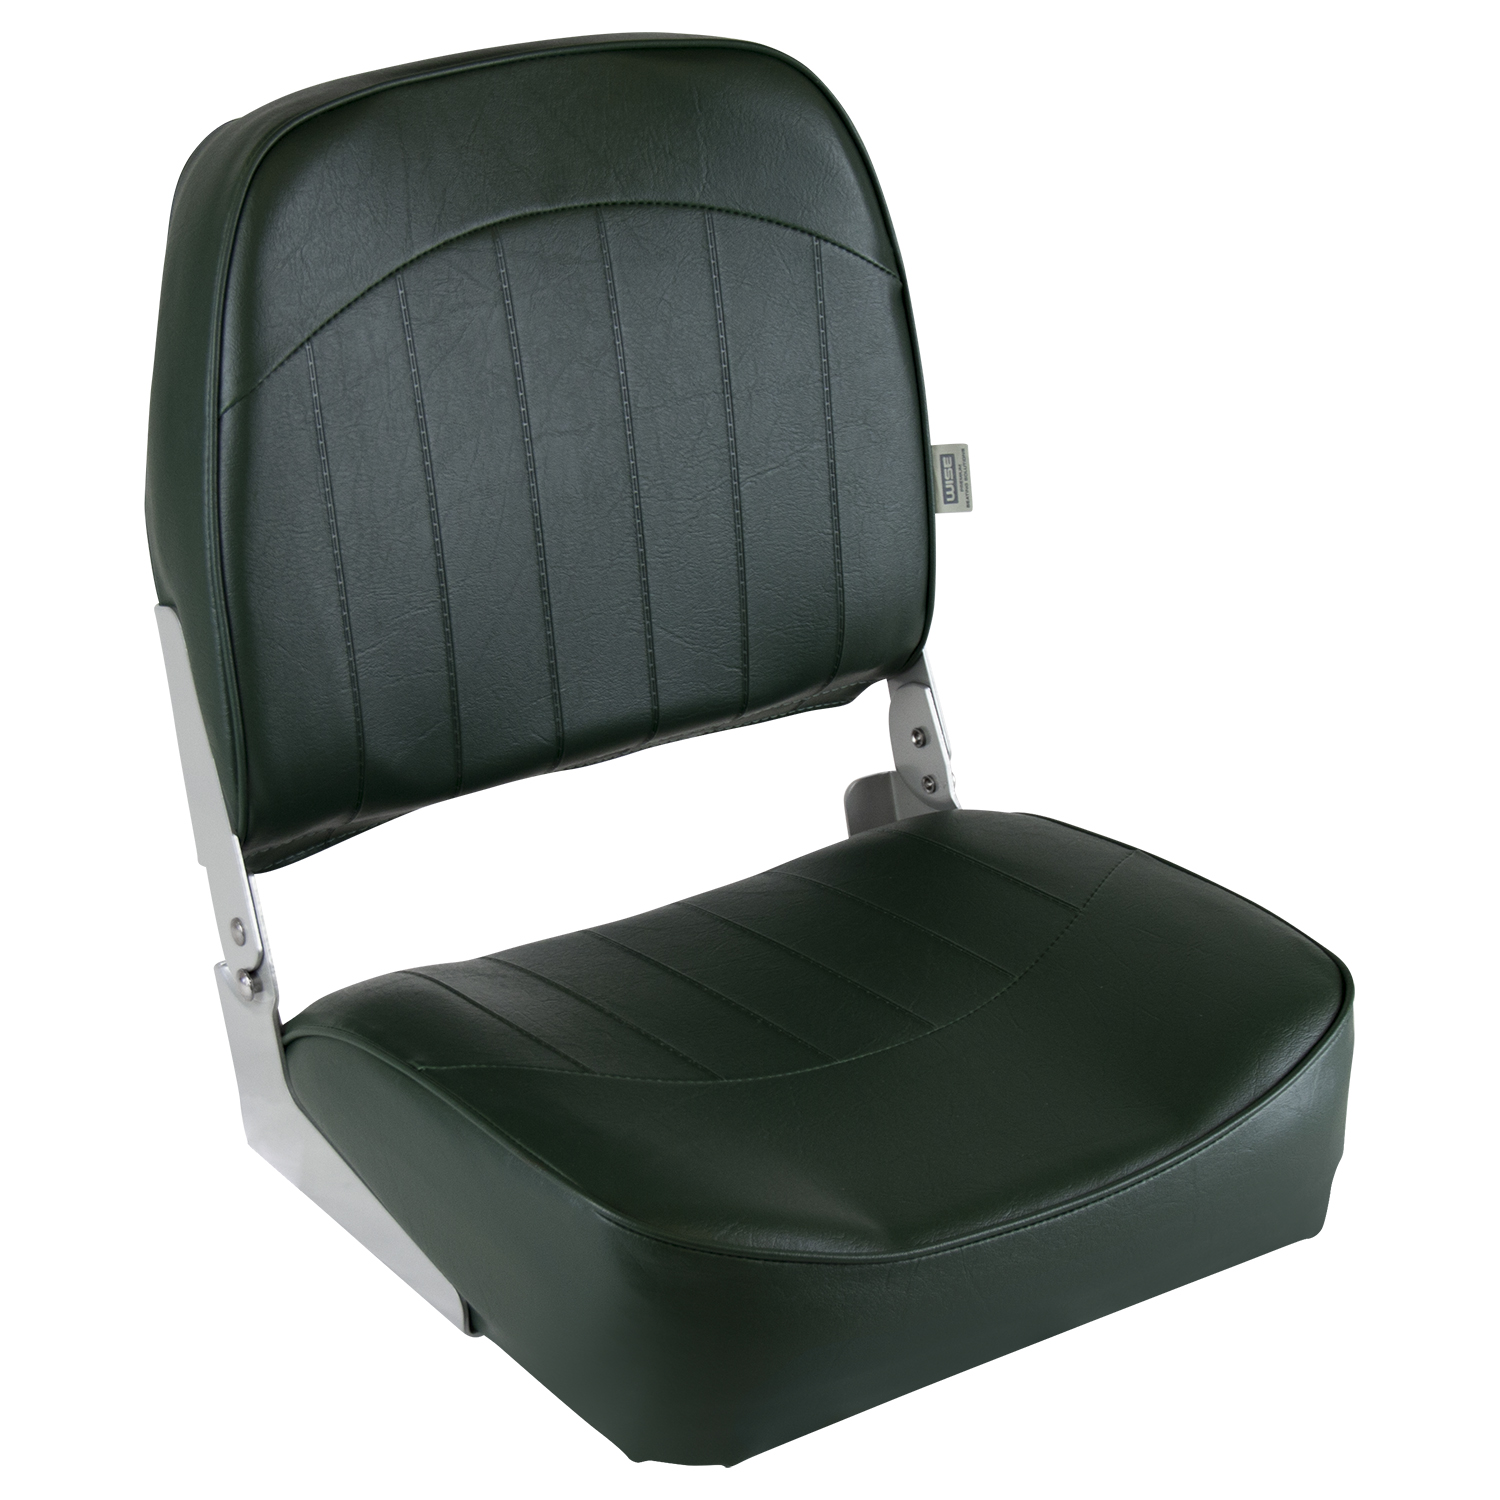 Wise 8WD734PLS-716 Low Back Boat Seat, Brown